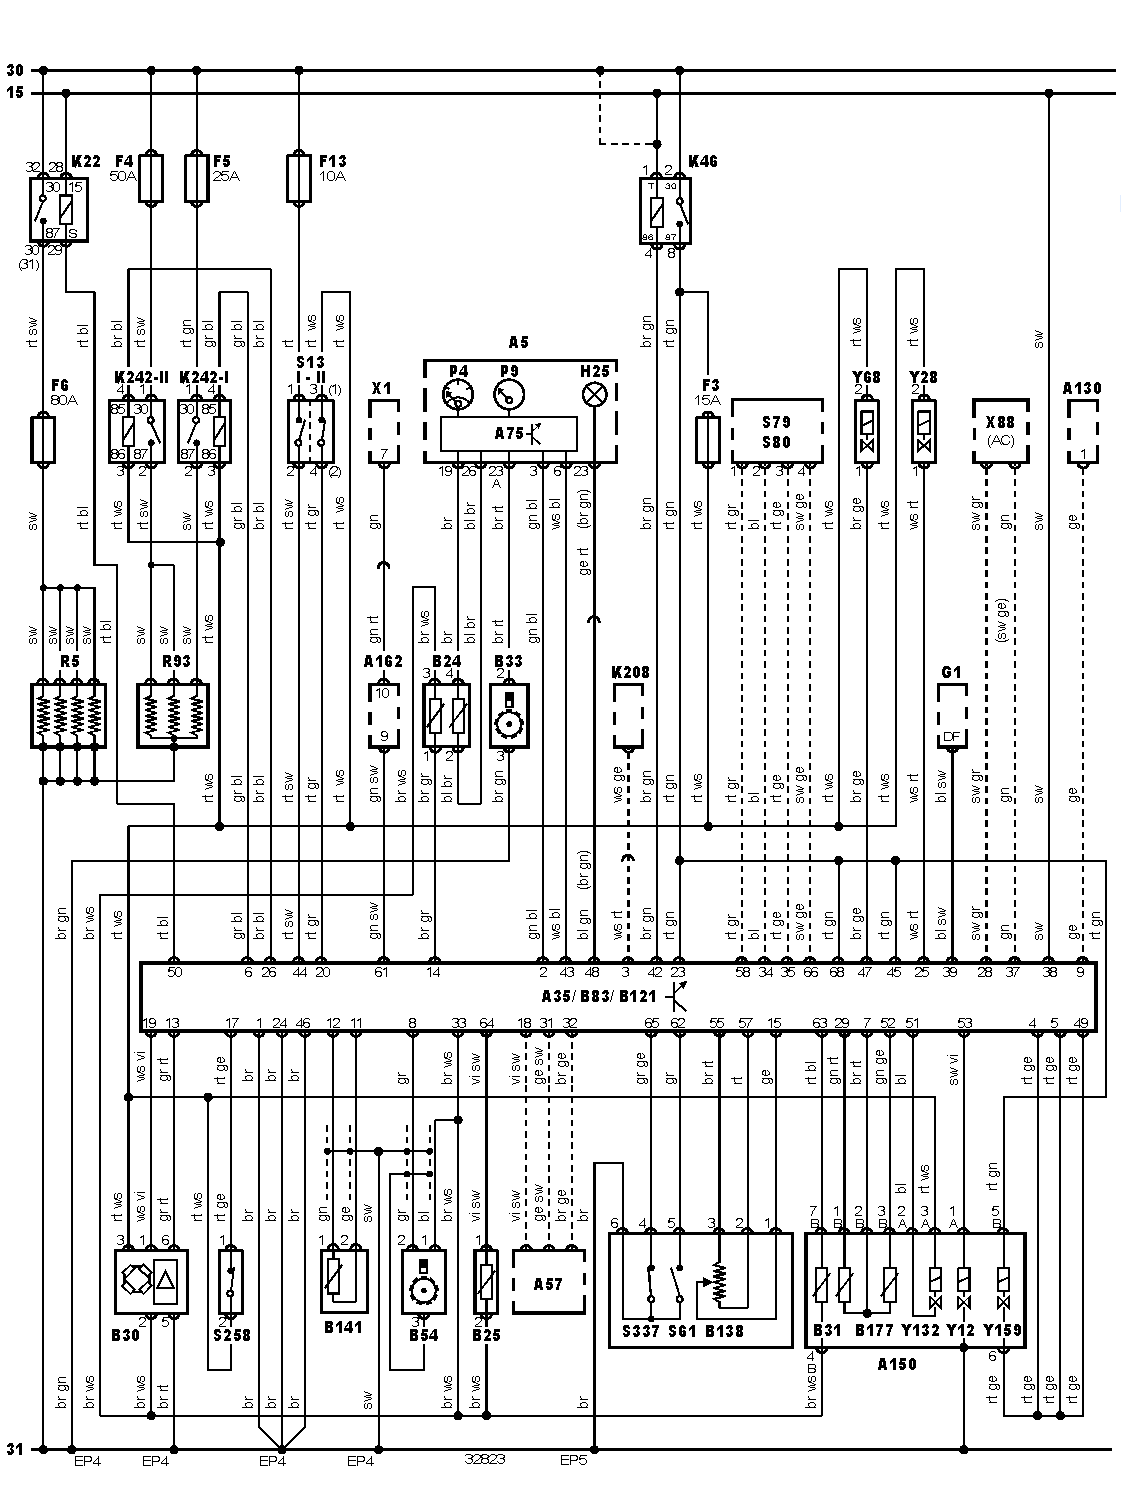 Tdi Wiring Diagram Change Your Idea With Design Diagrams For 2006 Vw Jetta Door Volkswagen Harness Free 19 Discovery 300tdi